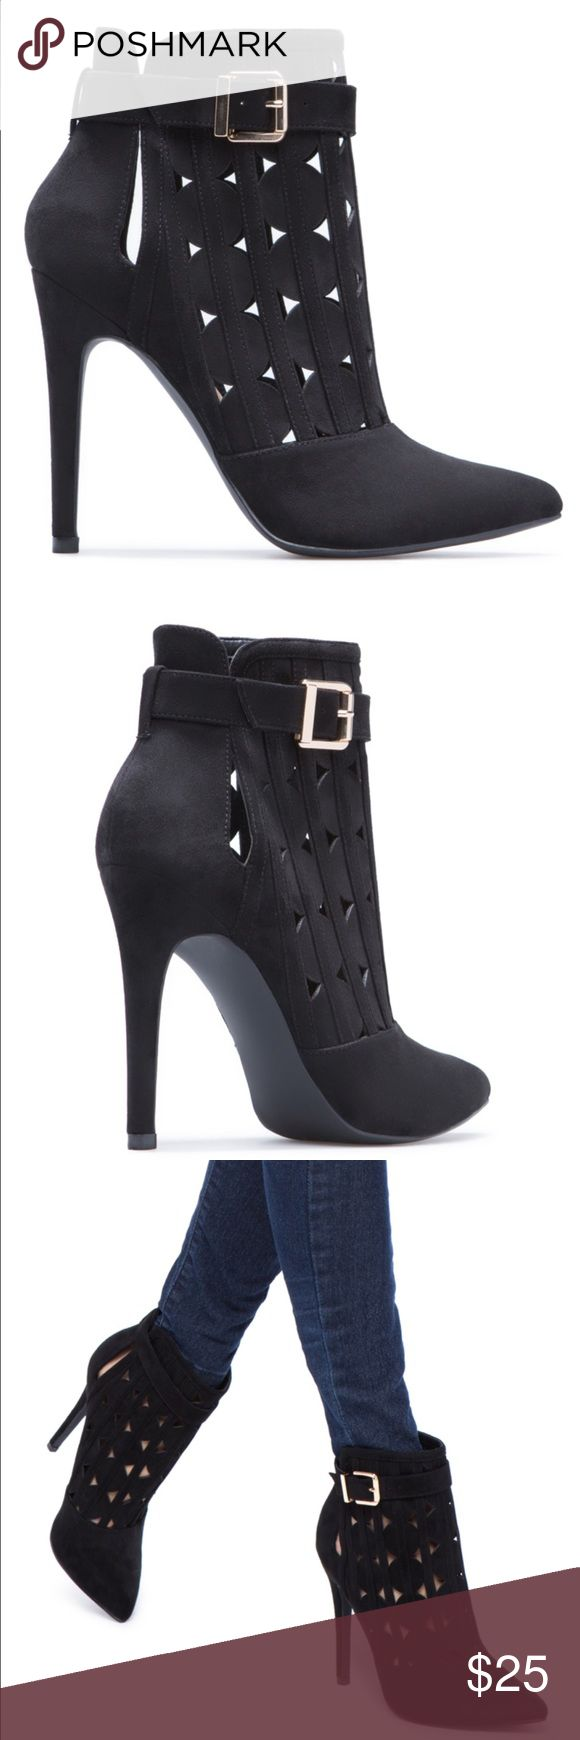 """Black high hell booties Black faux-suede high heel booties with strap. Outside heel 4.5""""  true to fit, shaft height 3.75"""".    I wore them once just to try them on and the heel was to high for me. Shoe Dazzle Shoes Ankle Boots & Booties"""